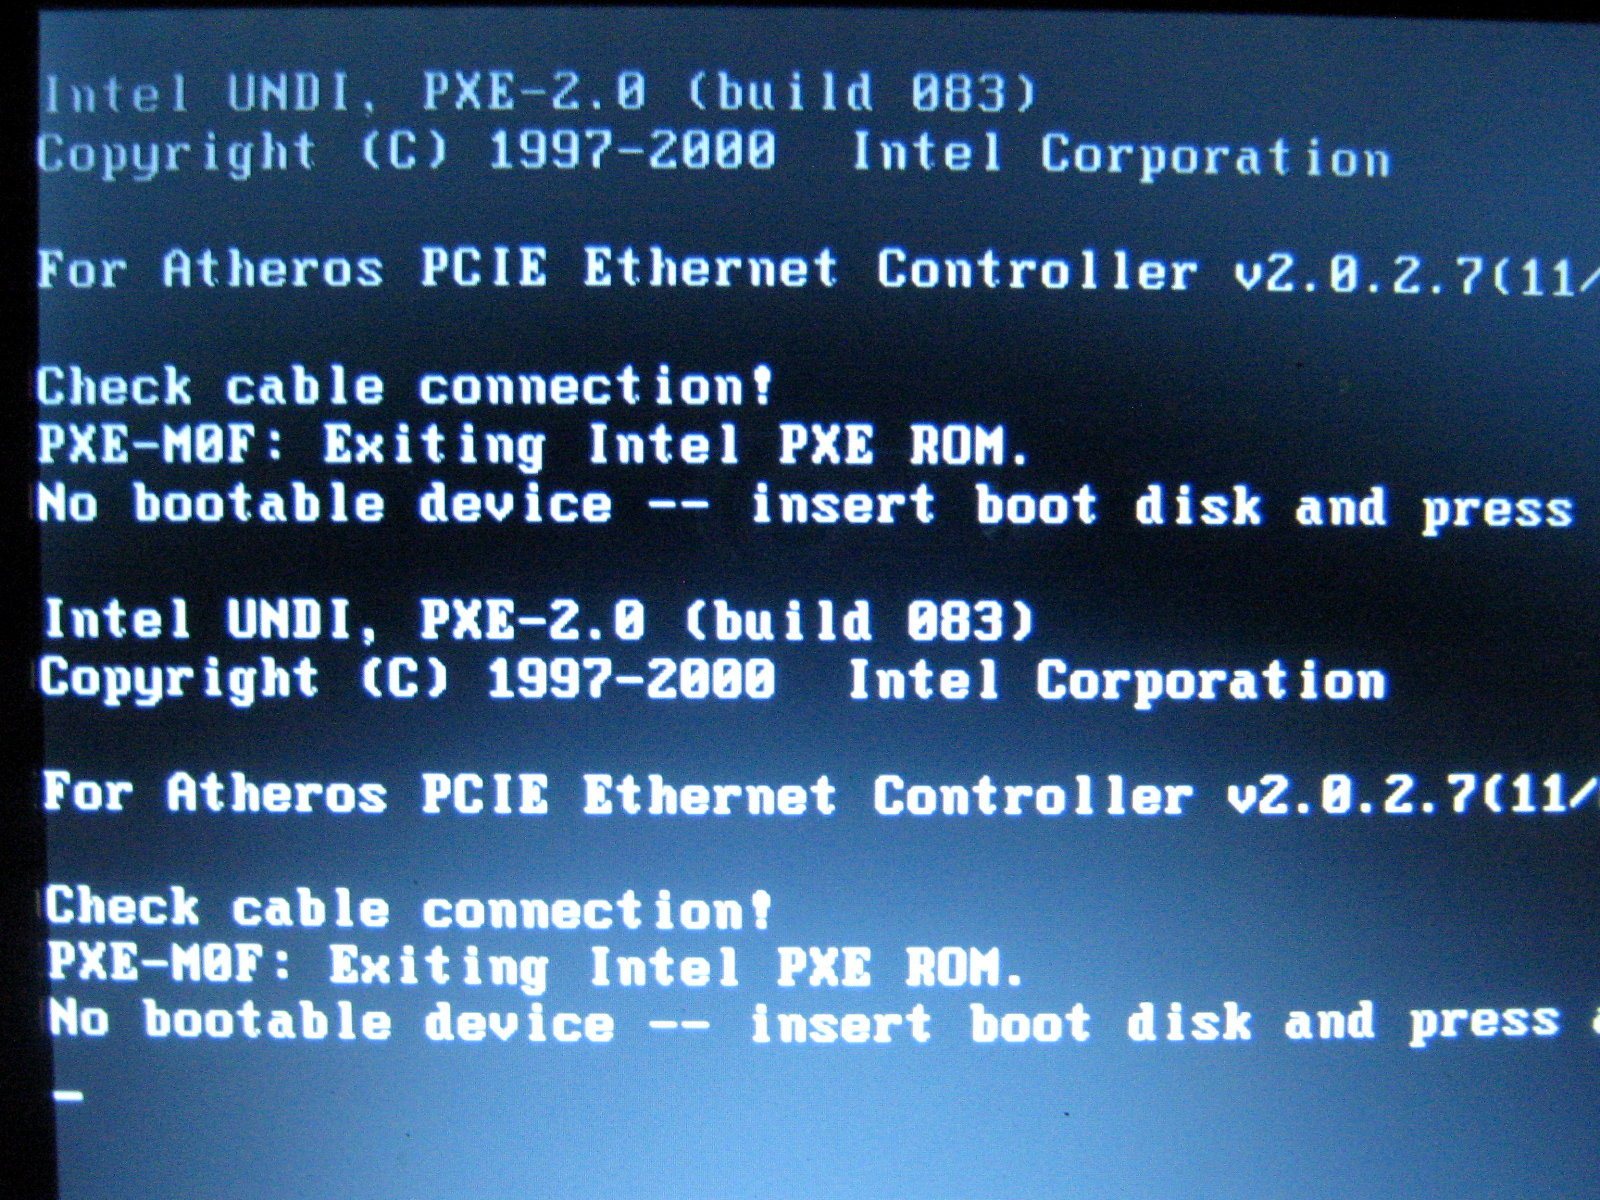 No bootable device, insert boot disk and press any key - Page 2